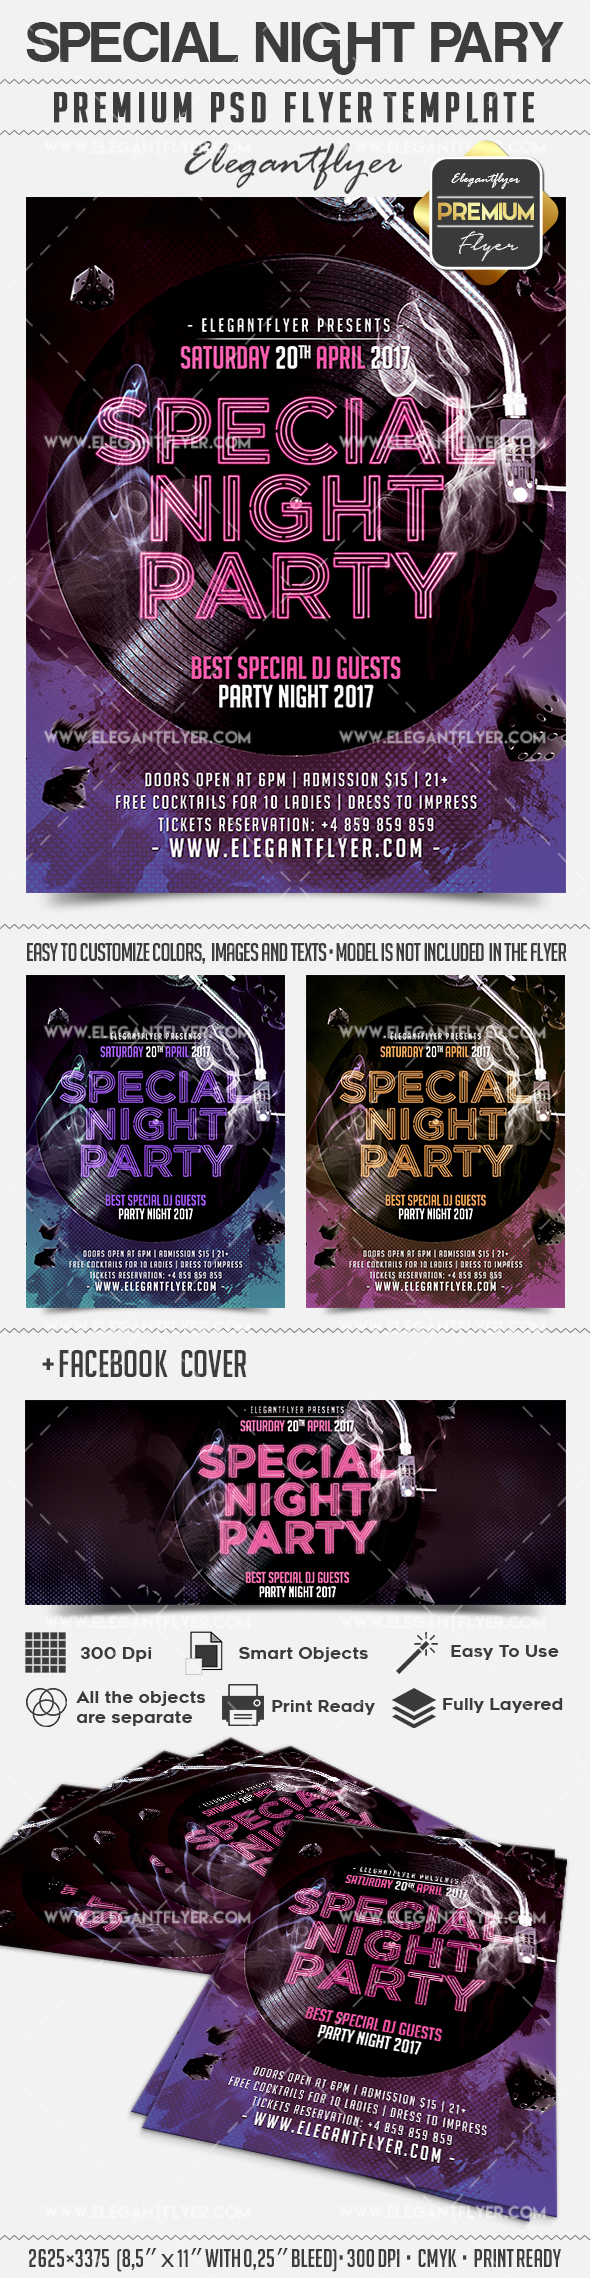 special night party flyer psd template by elegantflyer. Black Bedroom Furniture Sets. Home Design Ideas